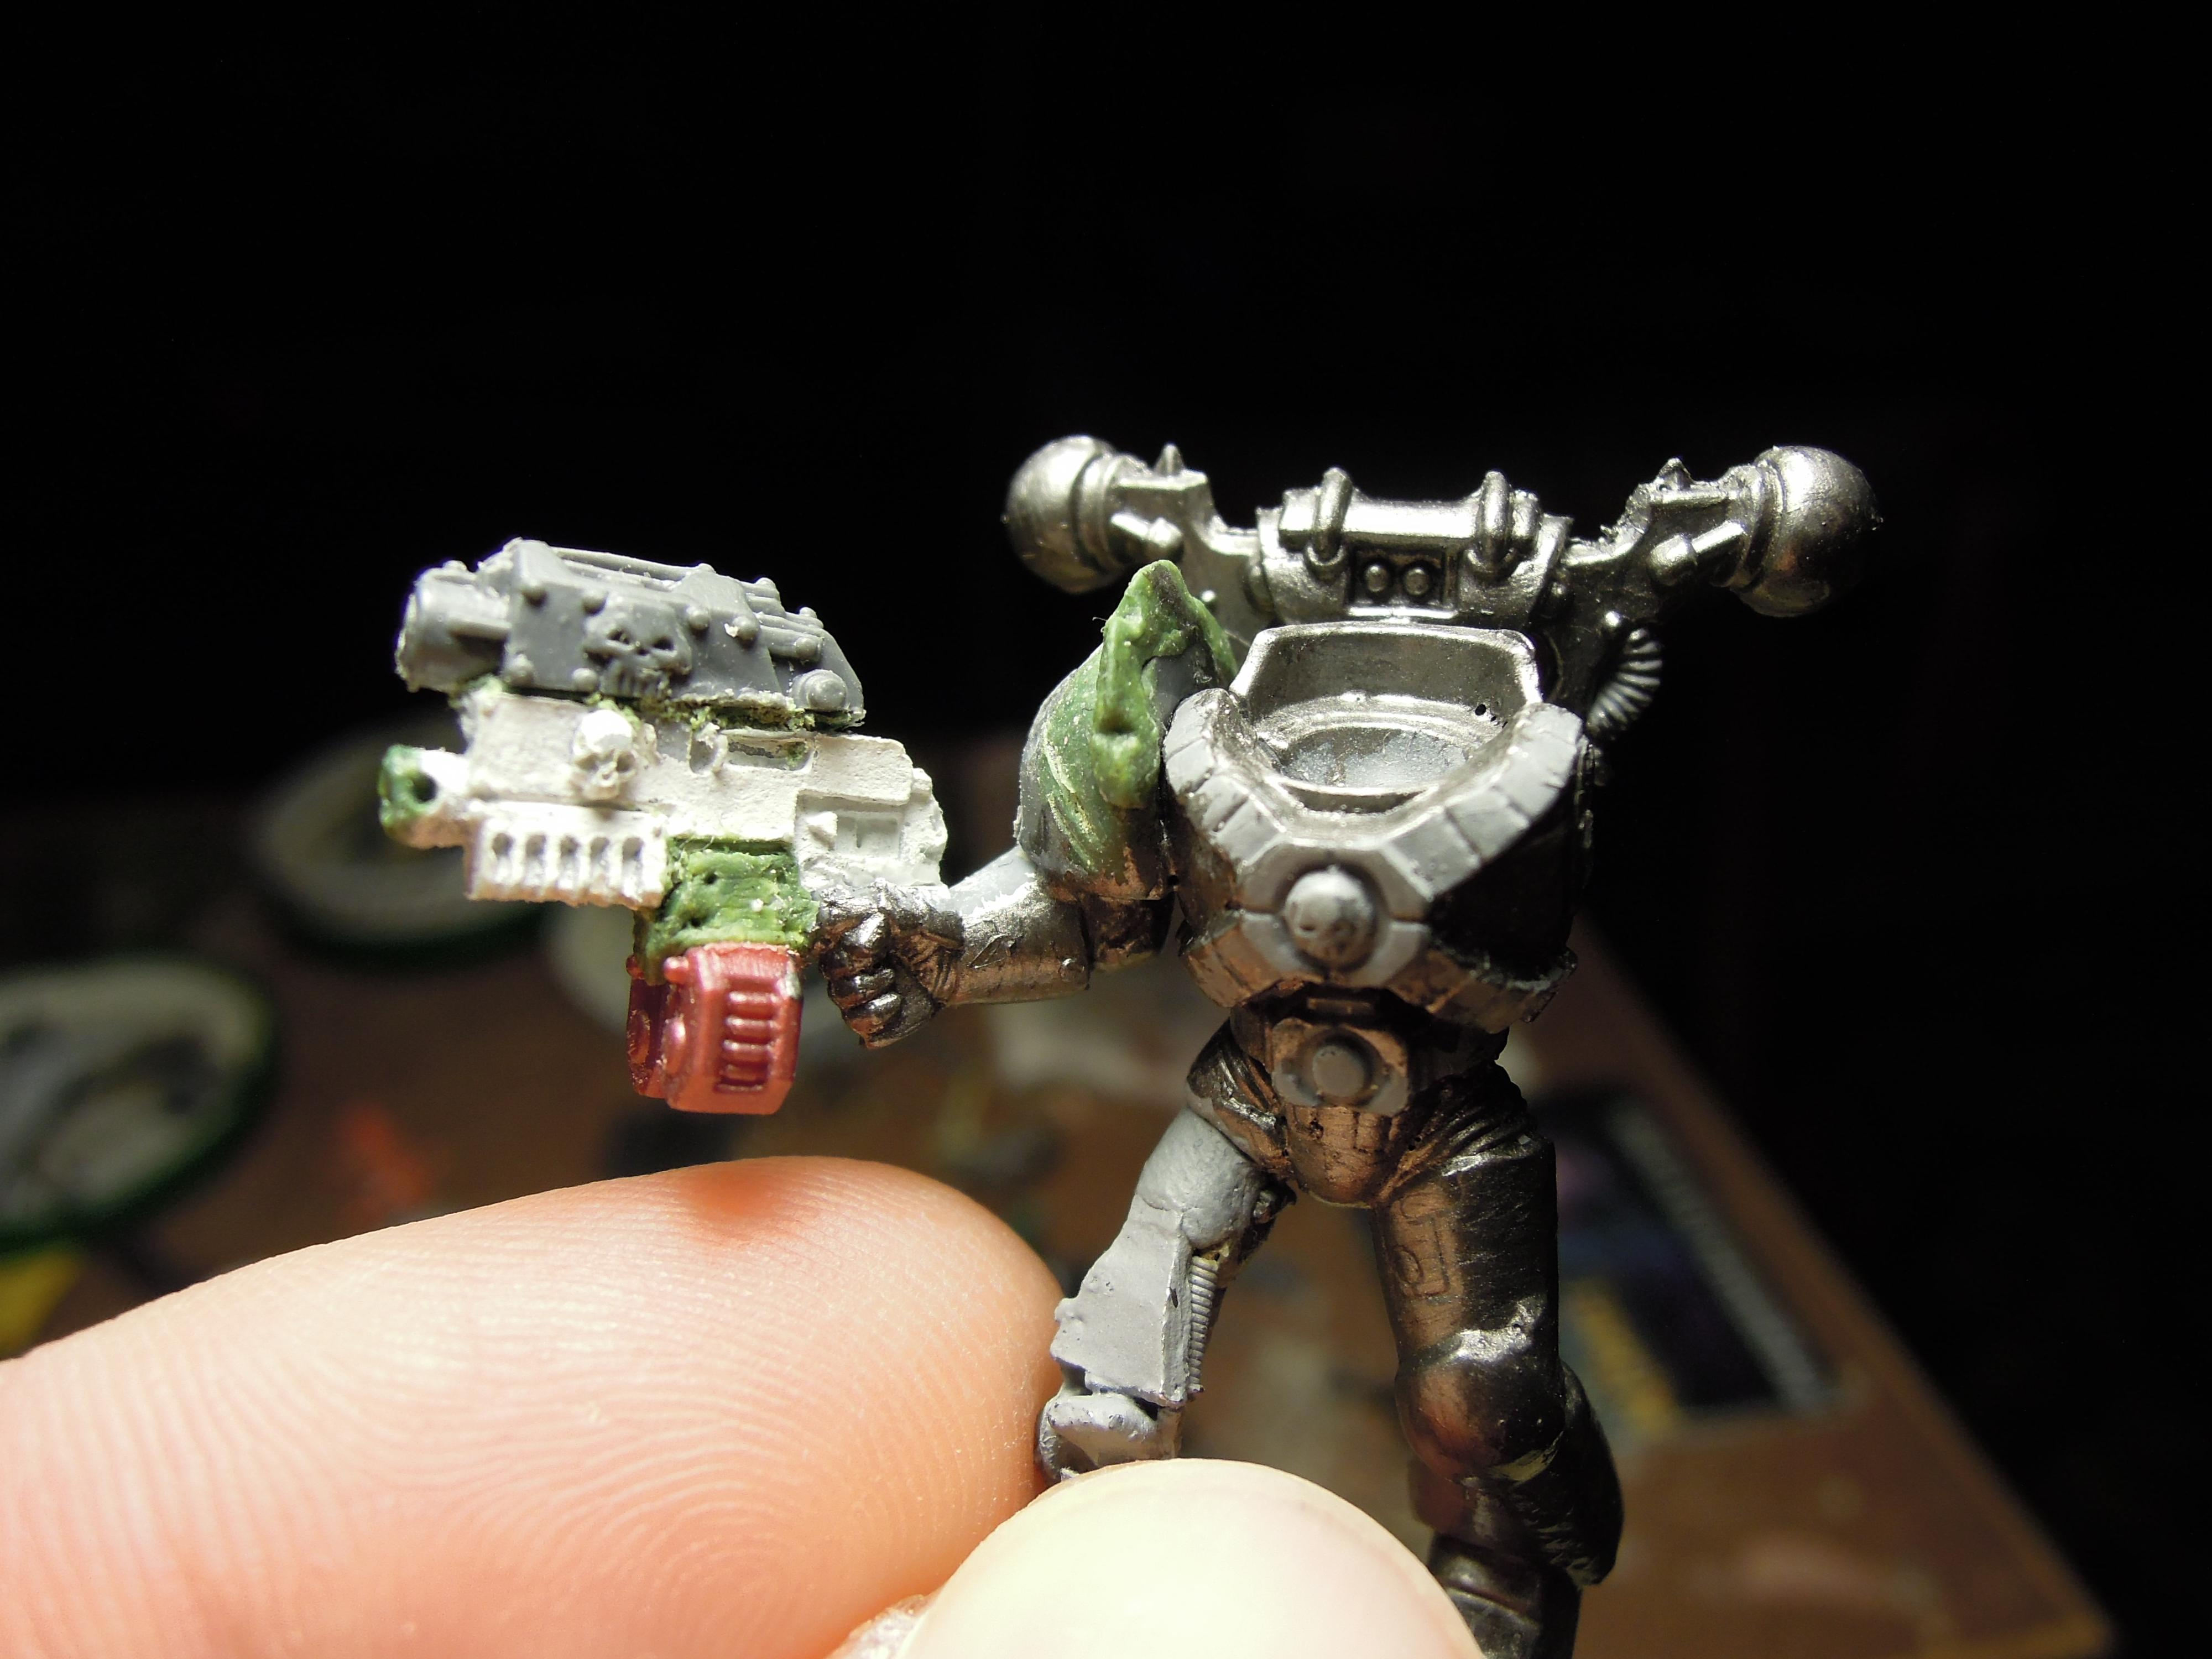 Chaos, Chaos Space Marines, Combi Weapon, Conversion, Greenstuff, Heretic Astartes, Iron Warriors, Iron Within, Iron Without!, Servo Leg, Warhammer 40,000, Work In Progress